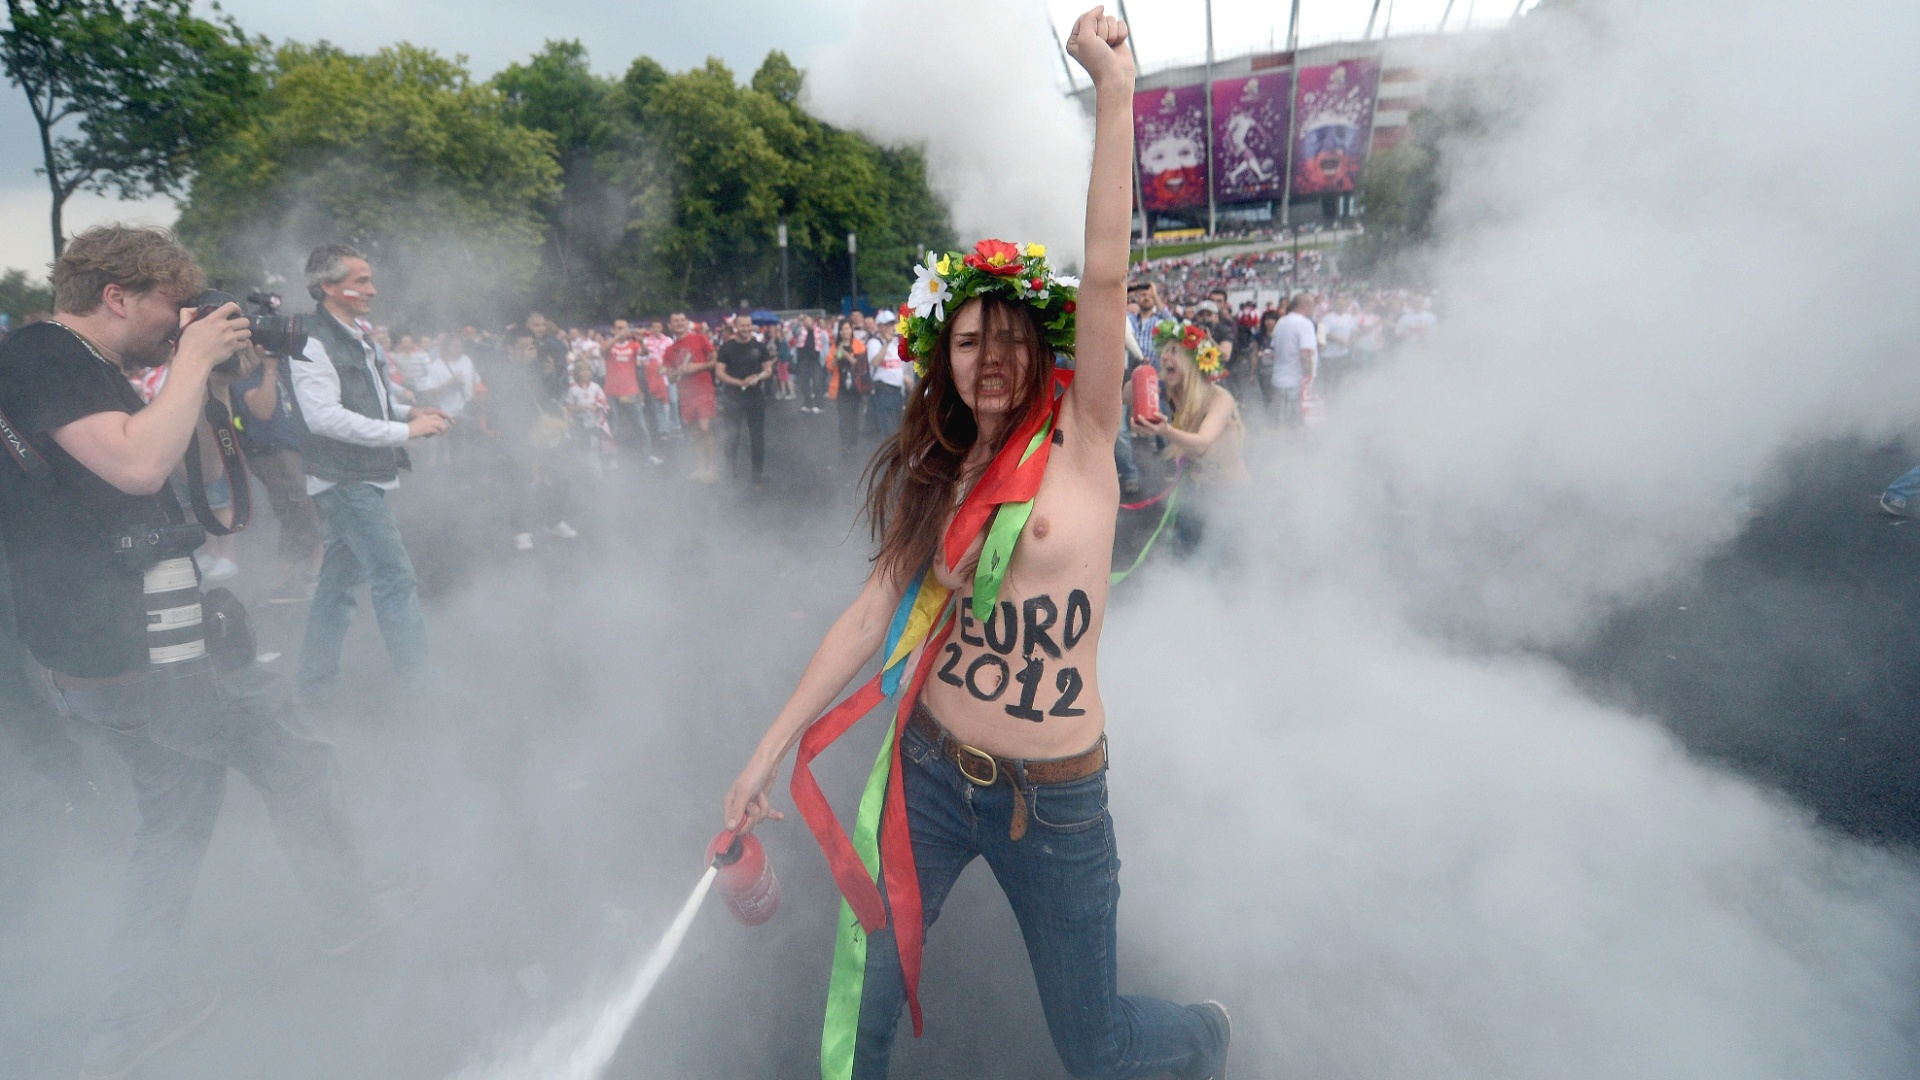 8.jun.2012 - Ativista do grupo feminista Femen protesta contra a prostituio na abertura da Eurocopa em Varsvia, na Polnia